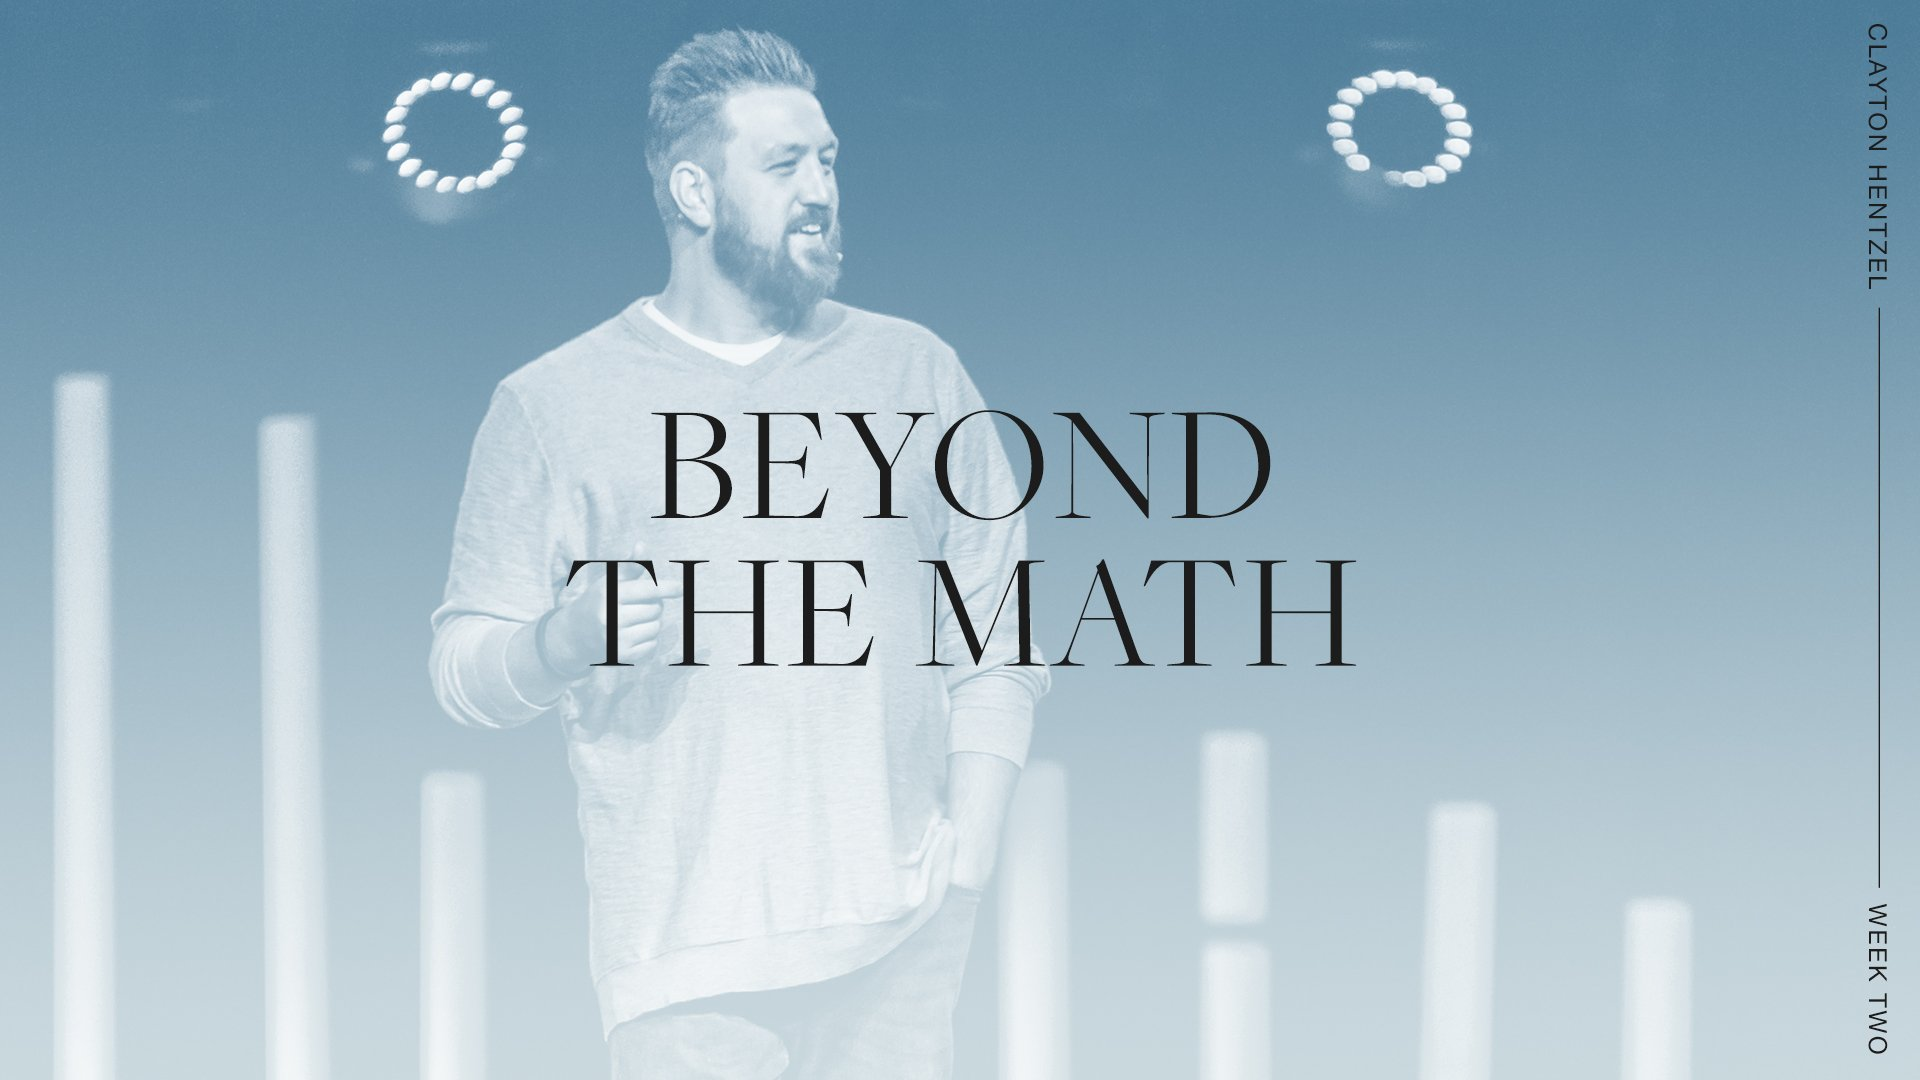 Beyond The Math